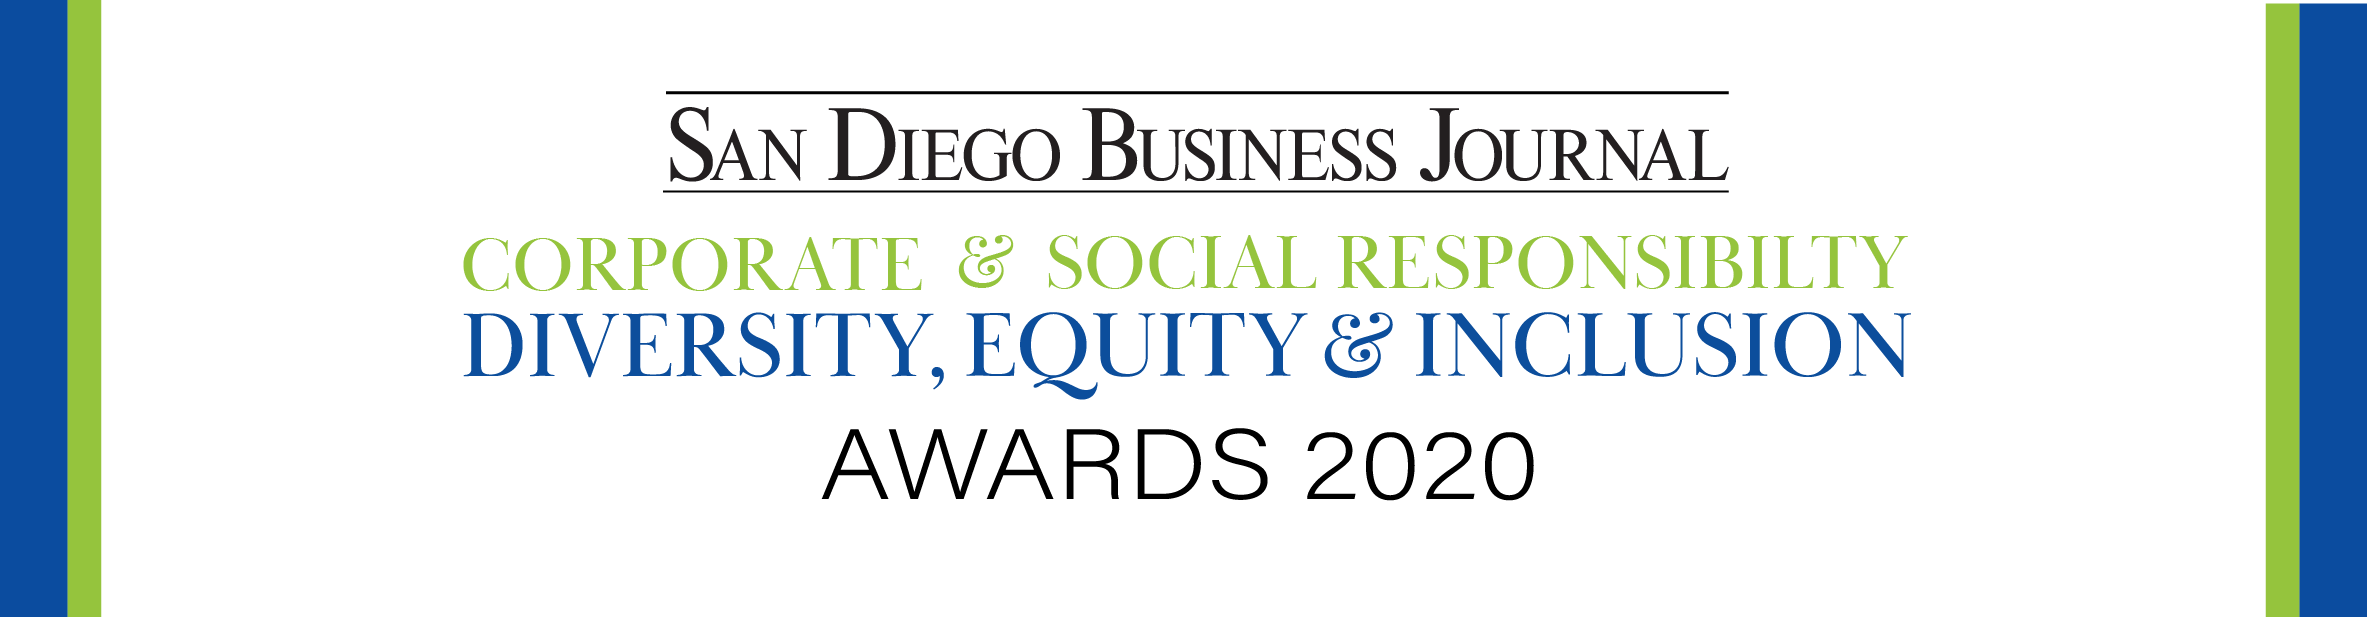 San Diego Business Journal Corporate & Social Responsibility, Diversity & Inclusion Awards 2020